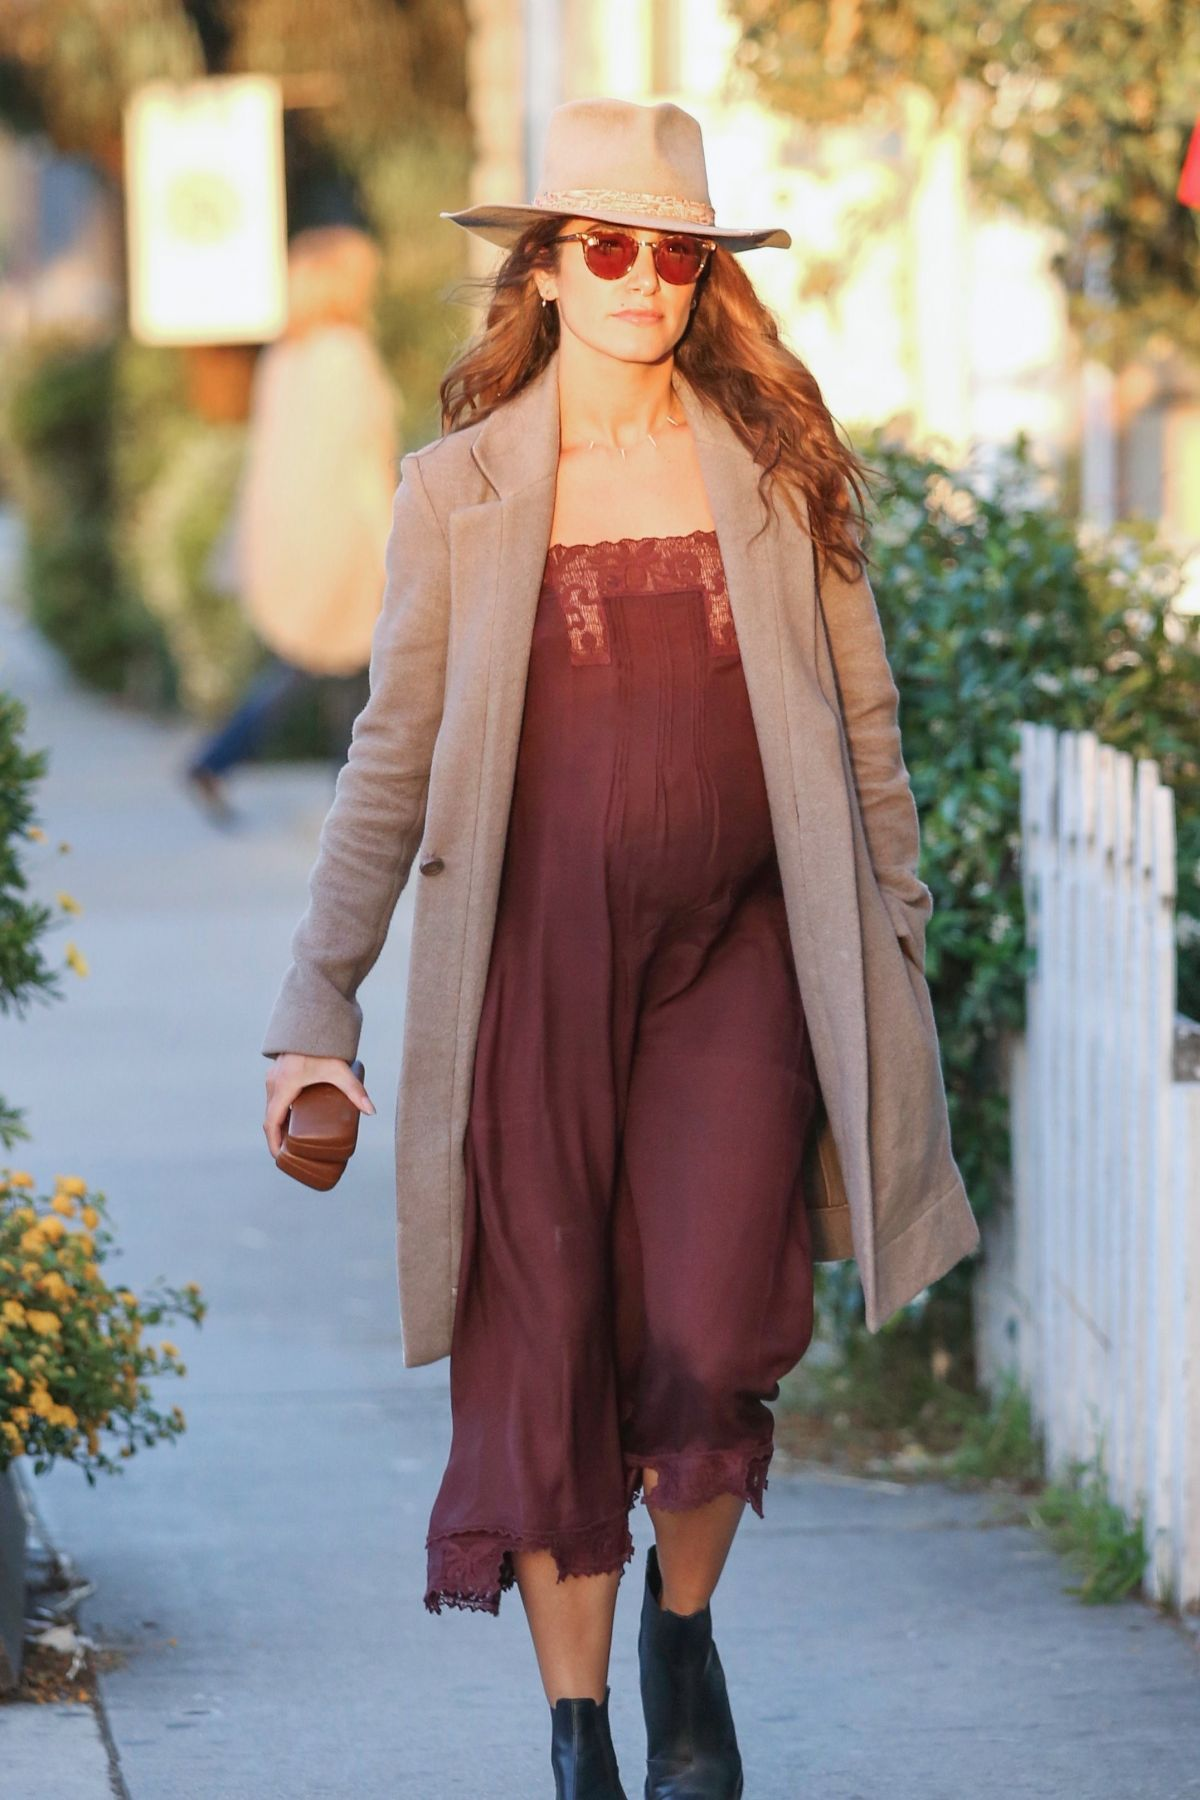 Pregnant Nikki Reed Out And About In Venice 06 08 2017